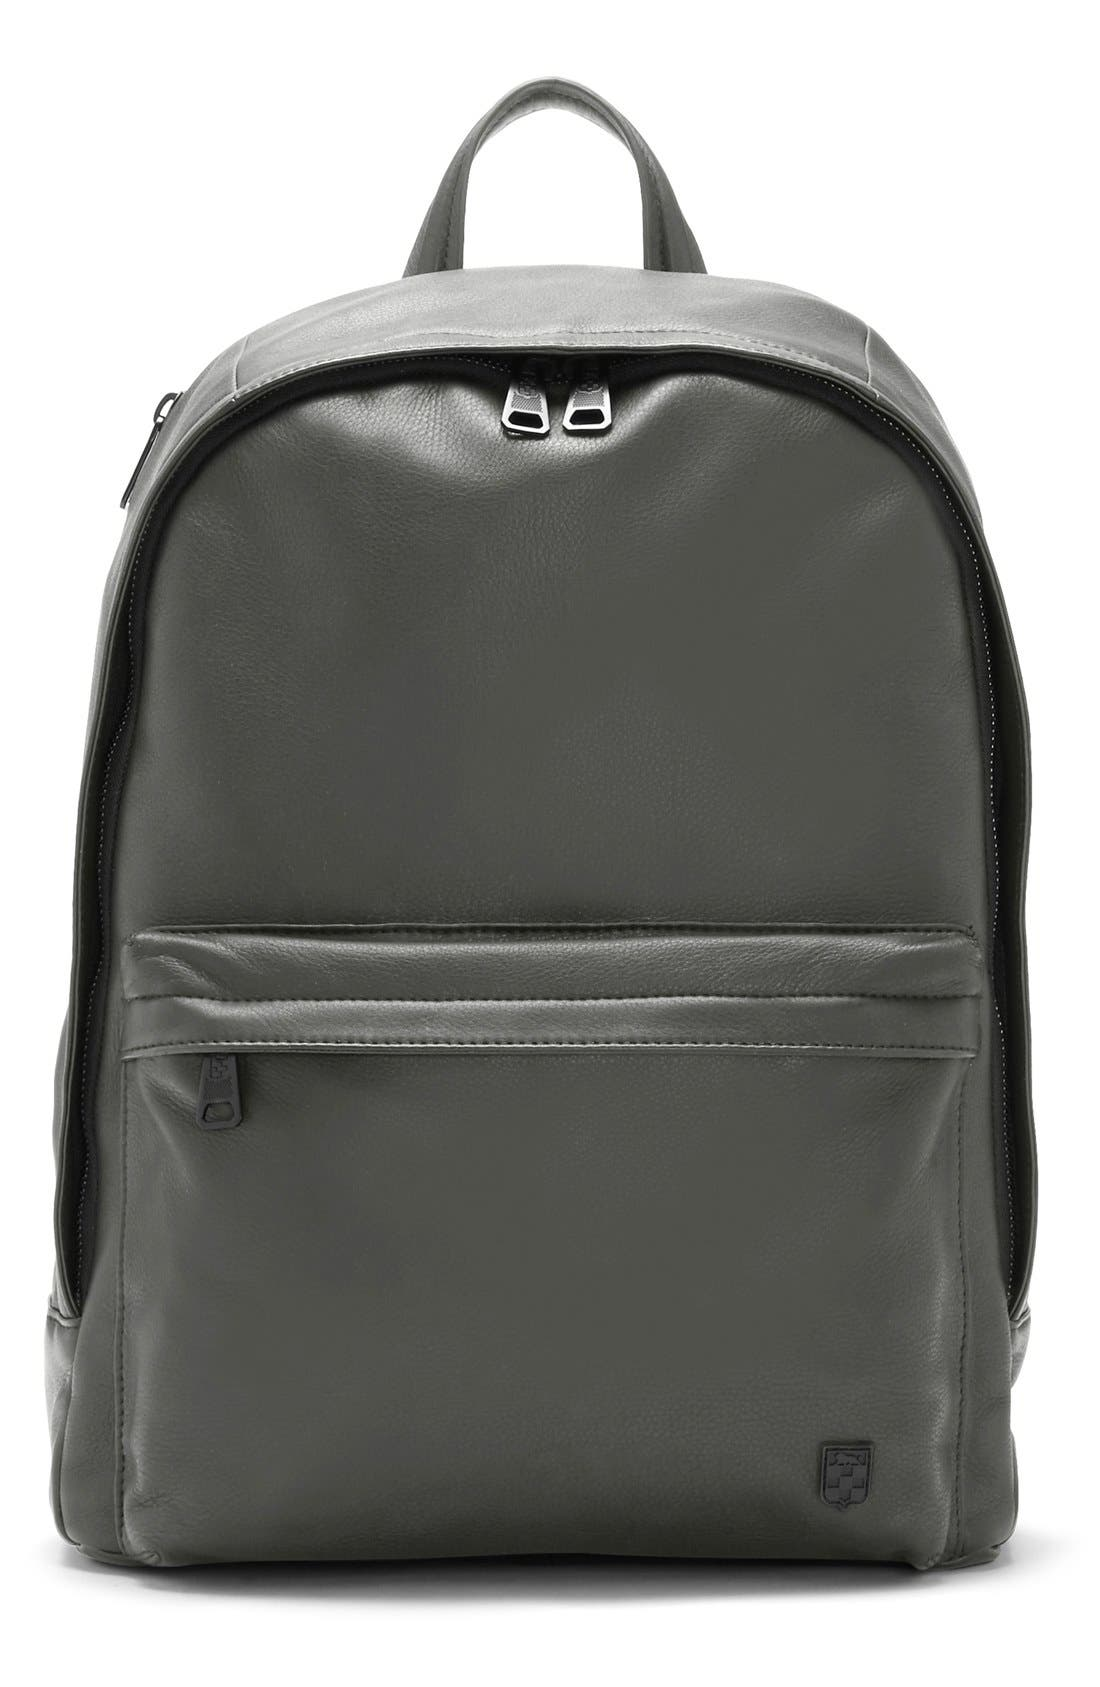 Alternate Image 1 Selected - Vince Camuto 'Tolve' Leather Backpack